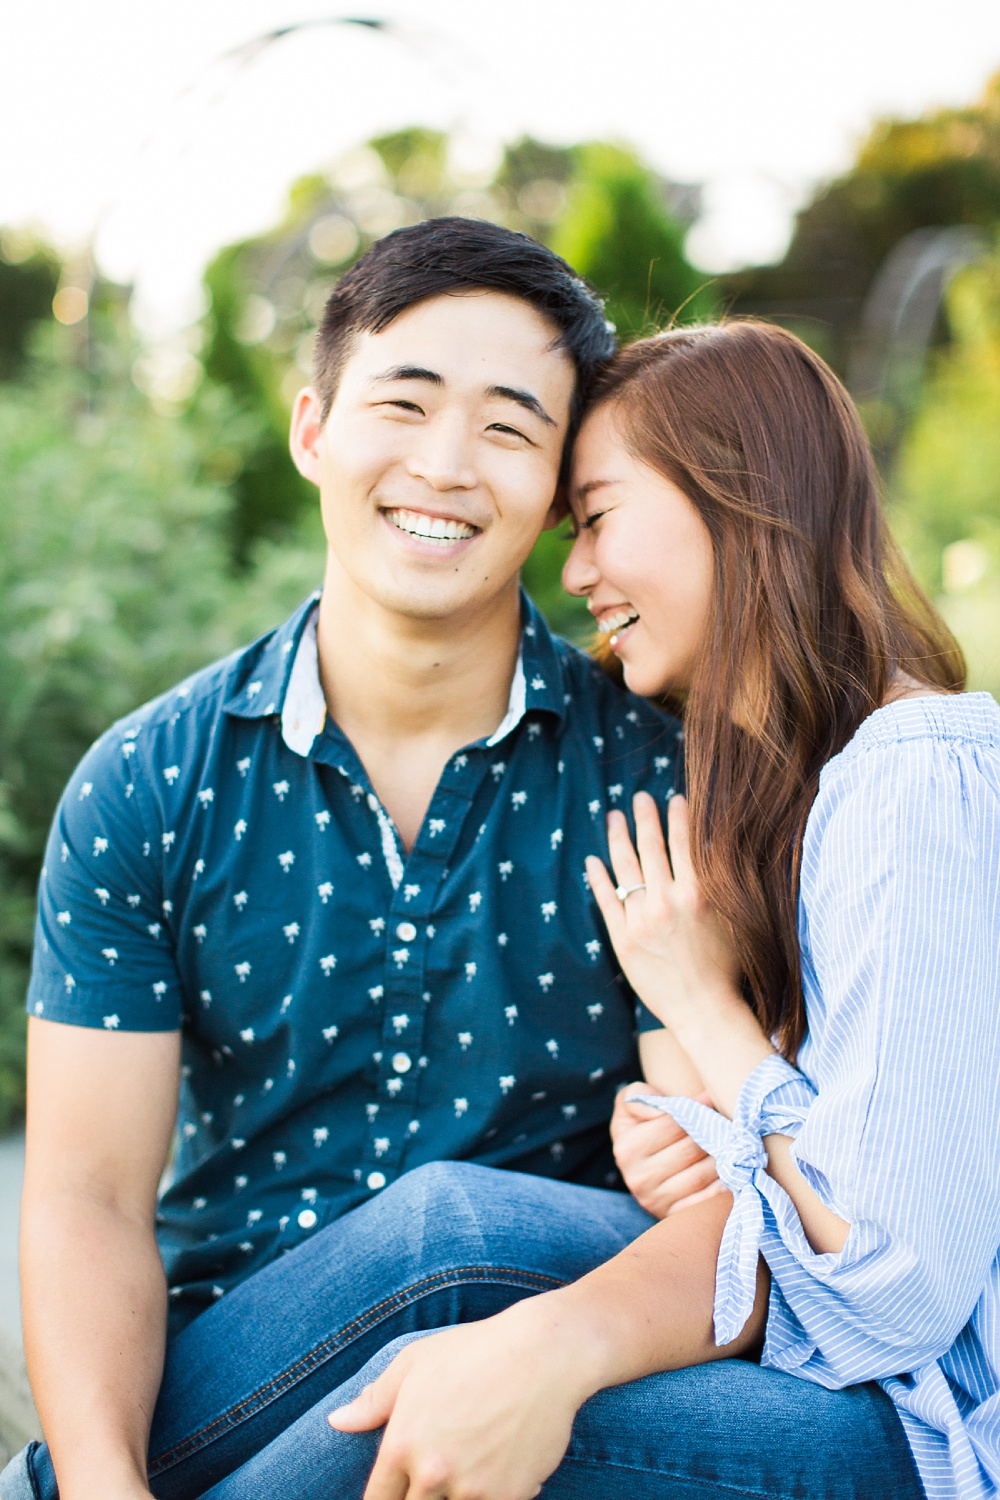 couple laughs and embraces while seated in a garden